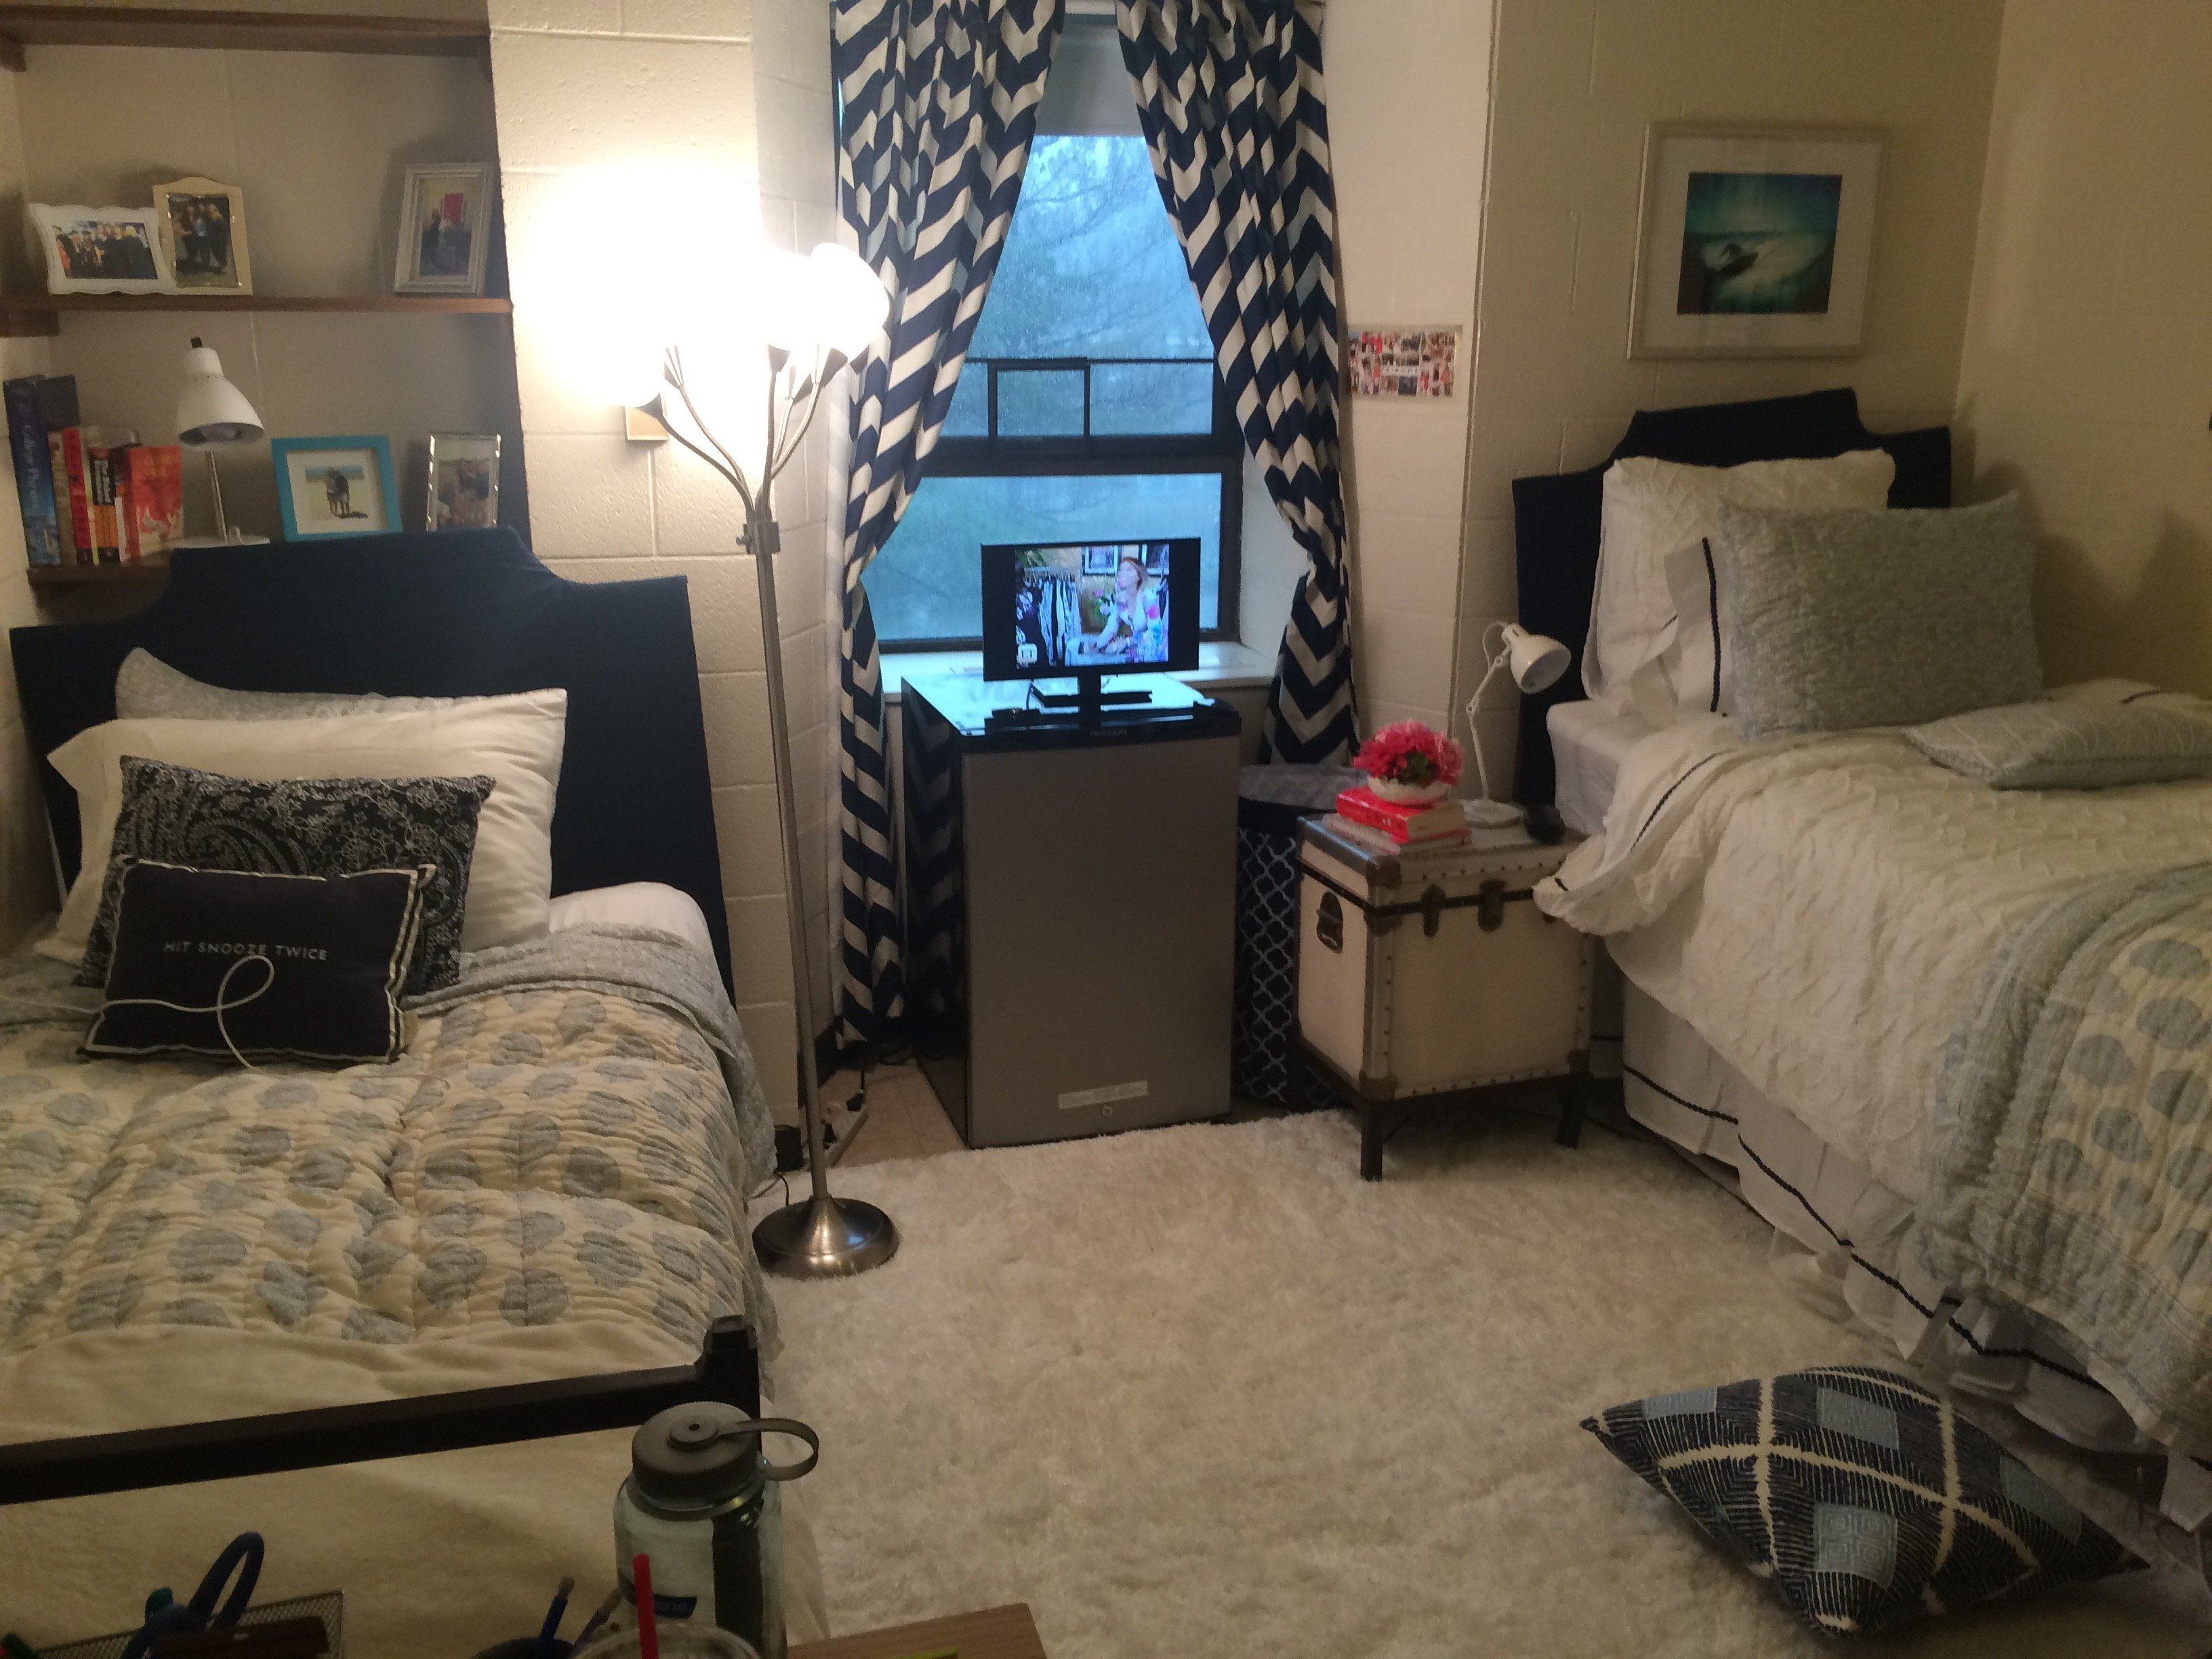 Dorm Room: Hotel OMG: The Best Dorm Room On Campus